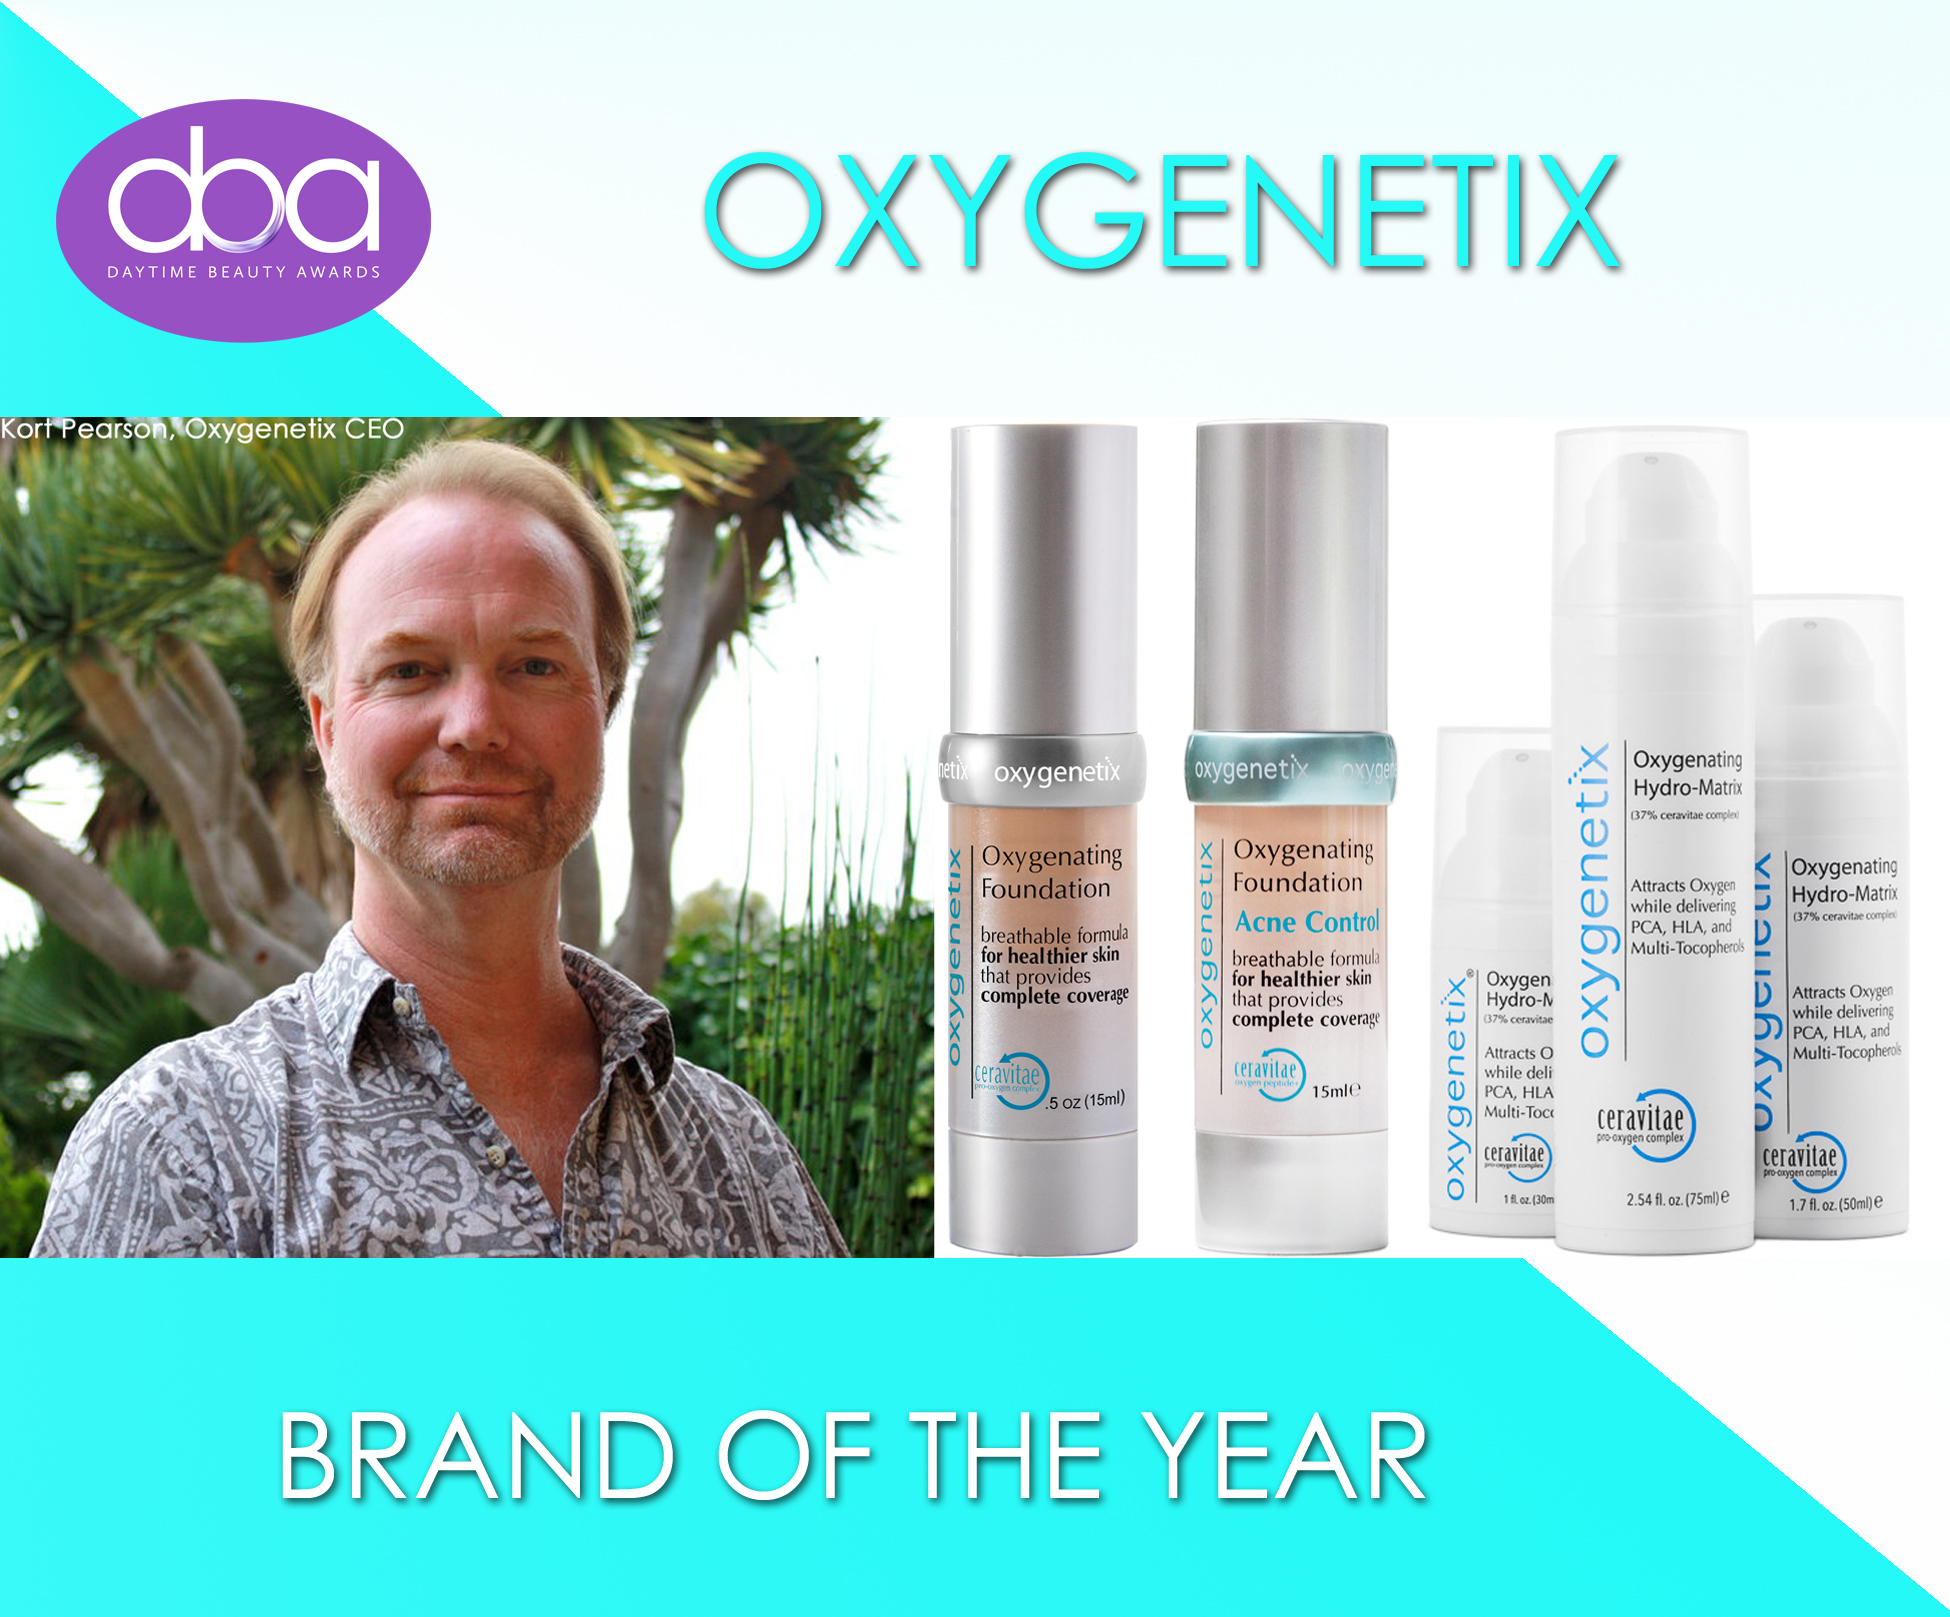 Oxygenetix, daytime beauty awards, kort pearson